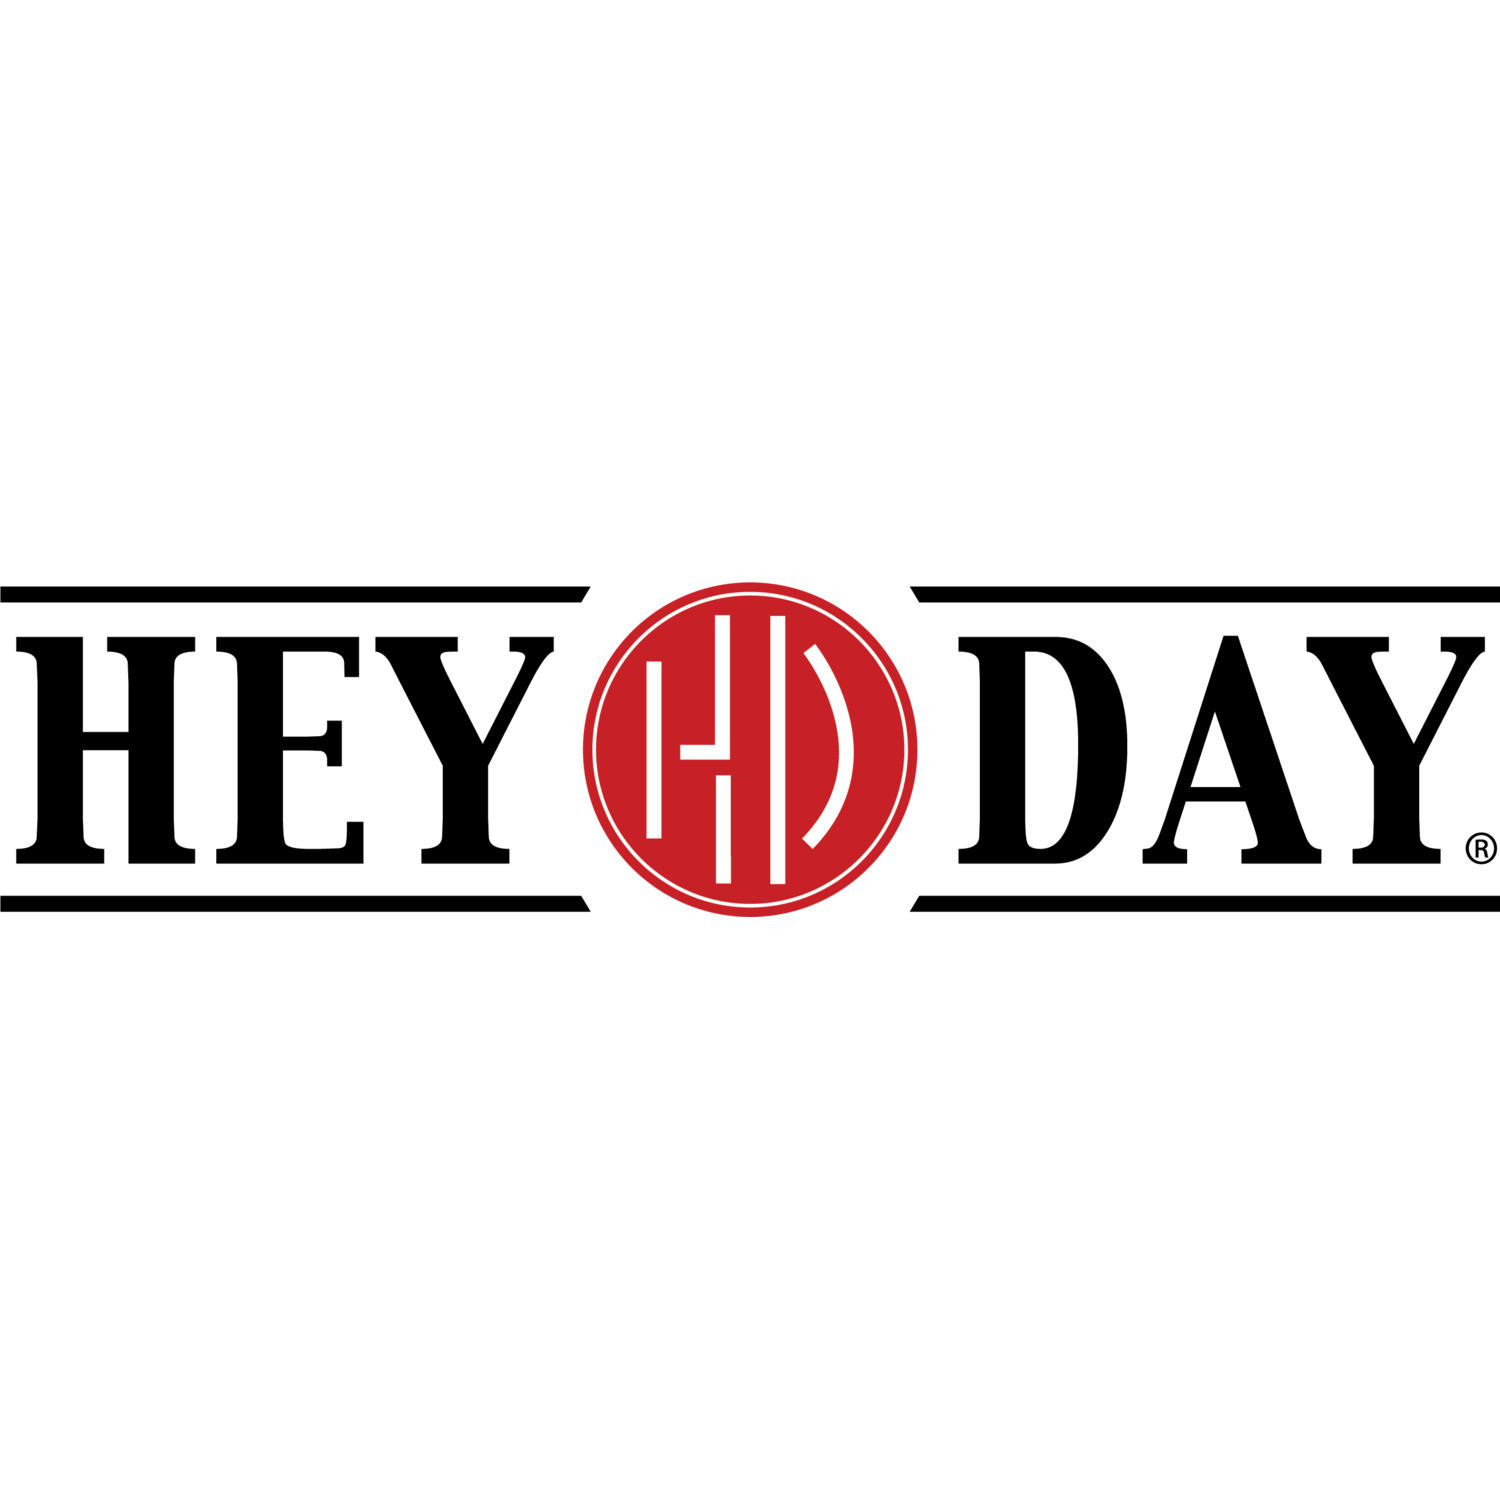 Logo-HeyDay.png